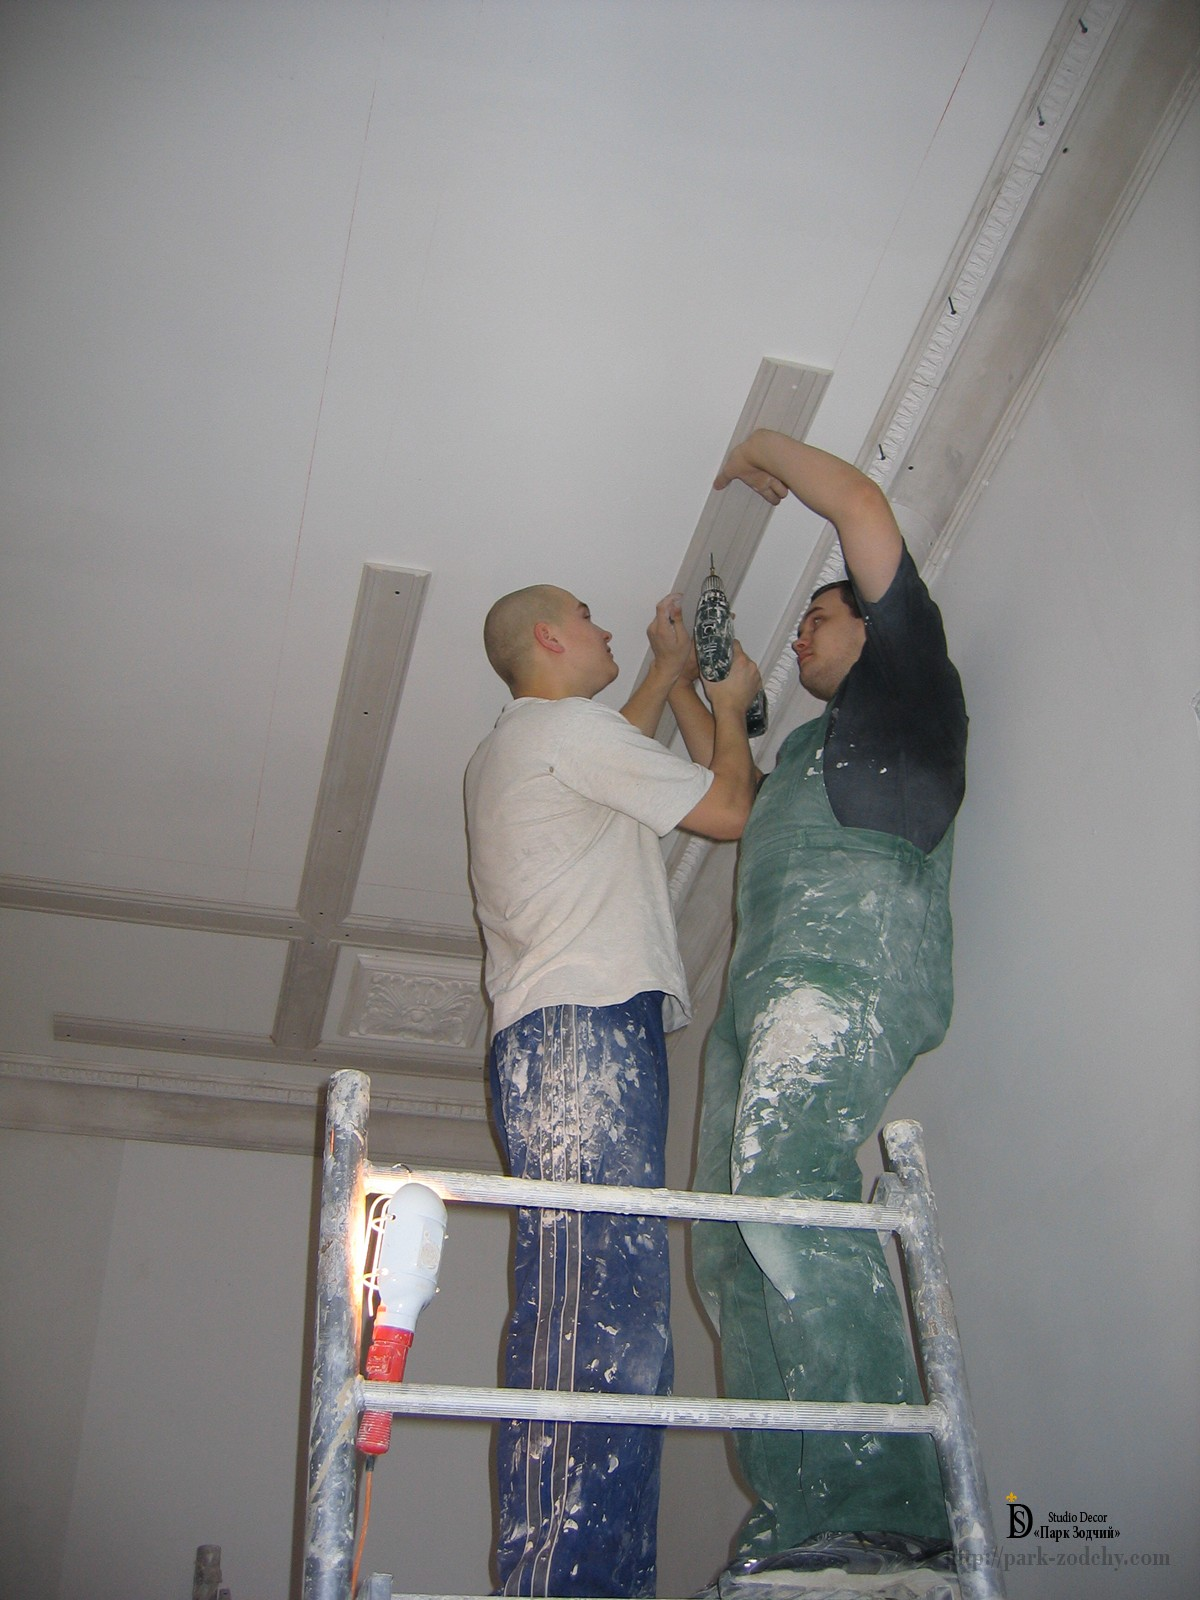 installation of stucco on the ceiling